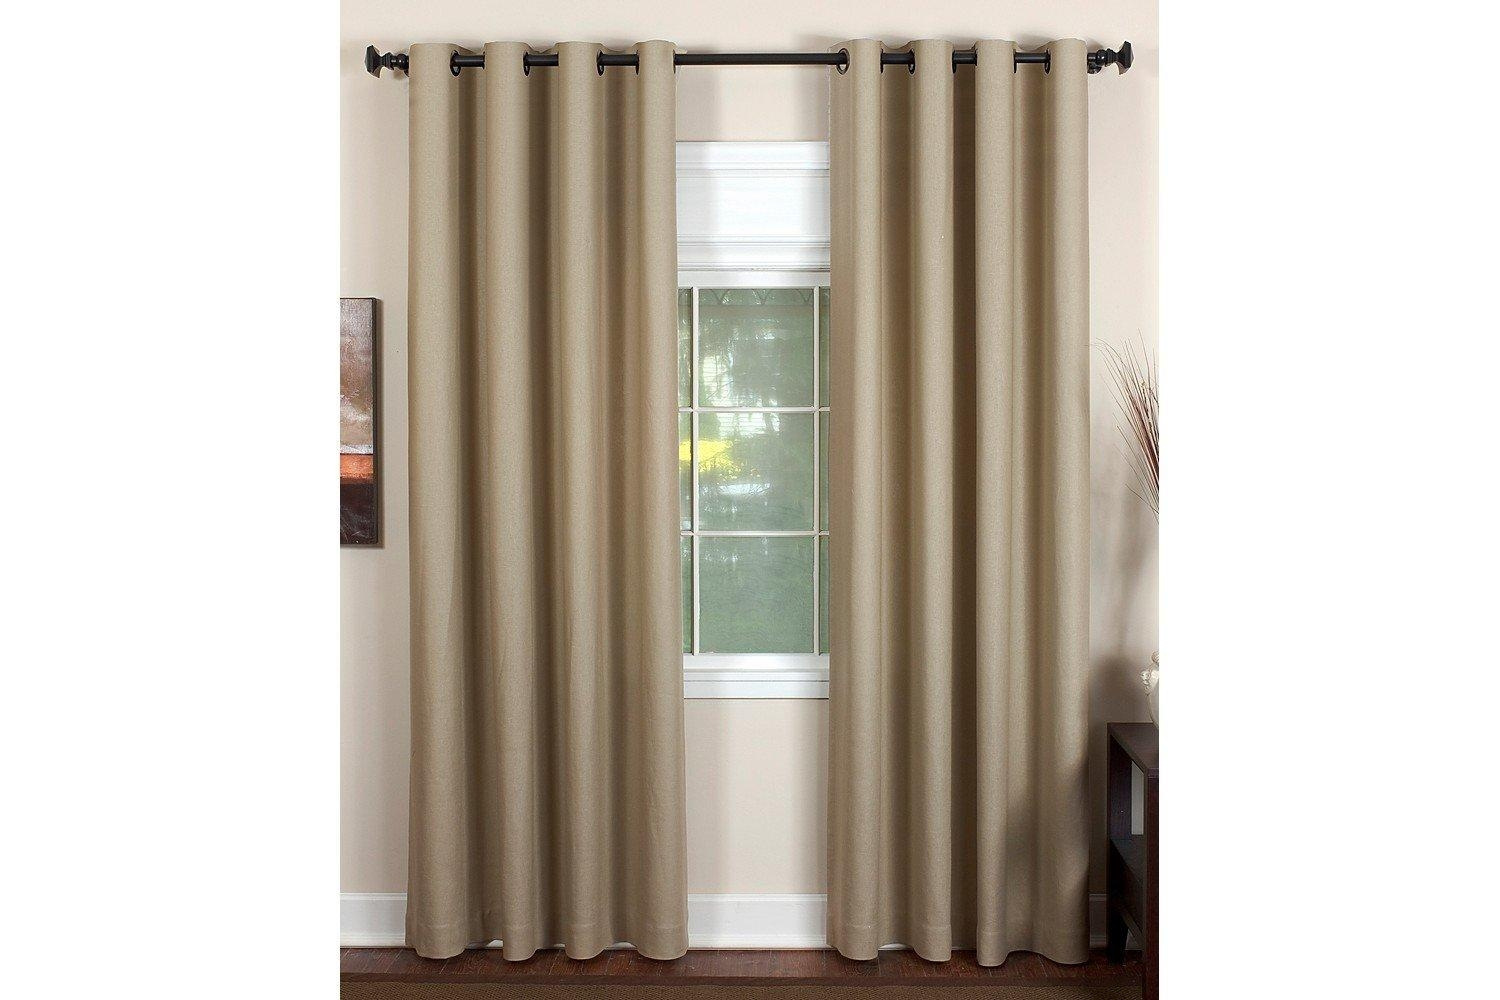 Decor: Brown Macys Curtains For Interior Design Ideas With French With Regard To Macys Wall Art (View 9 of 20)